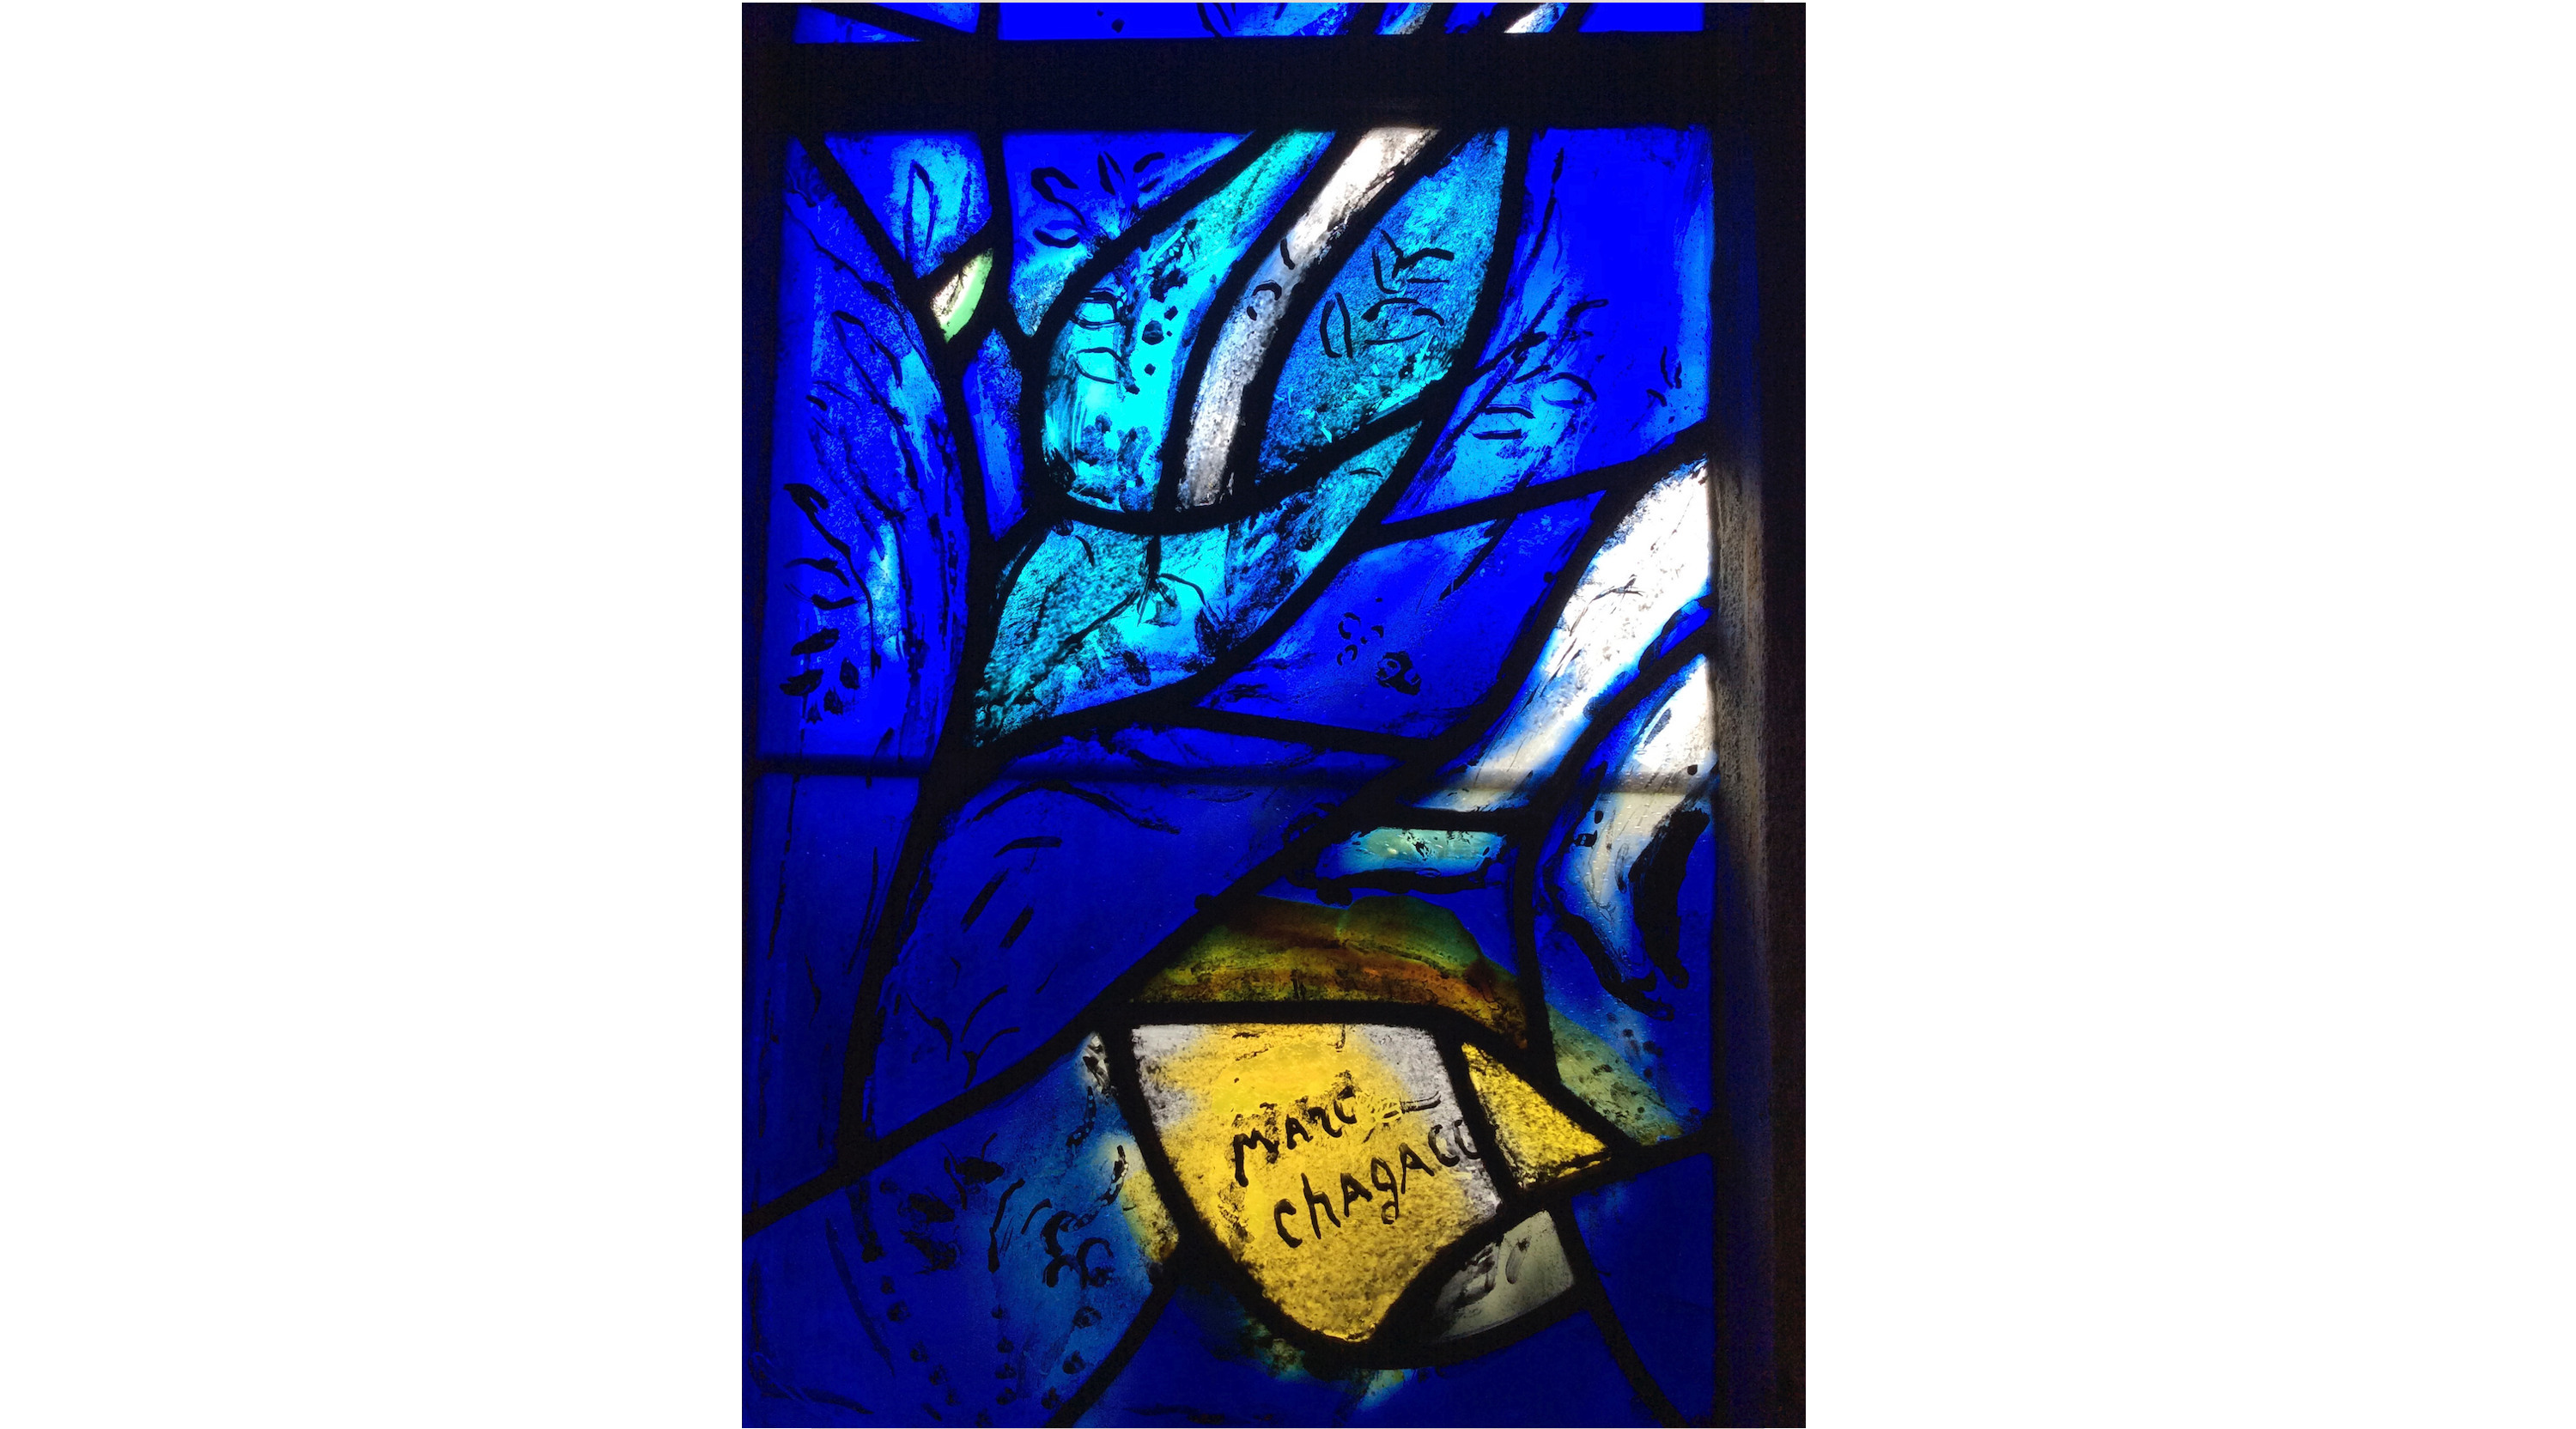 Marc Chagall, stained glass, all saints church, tudeley, art